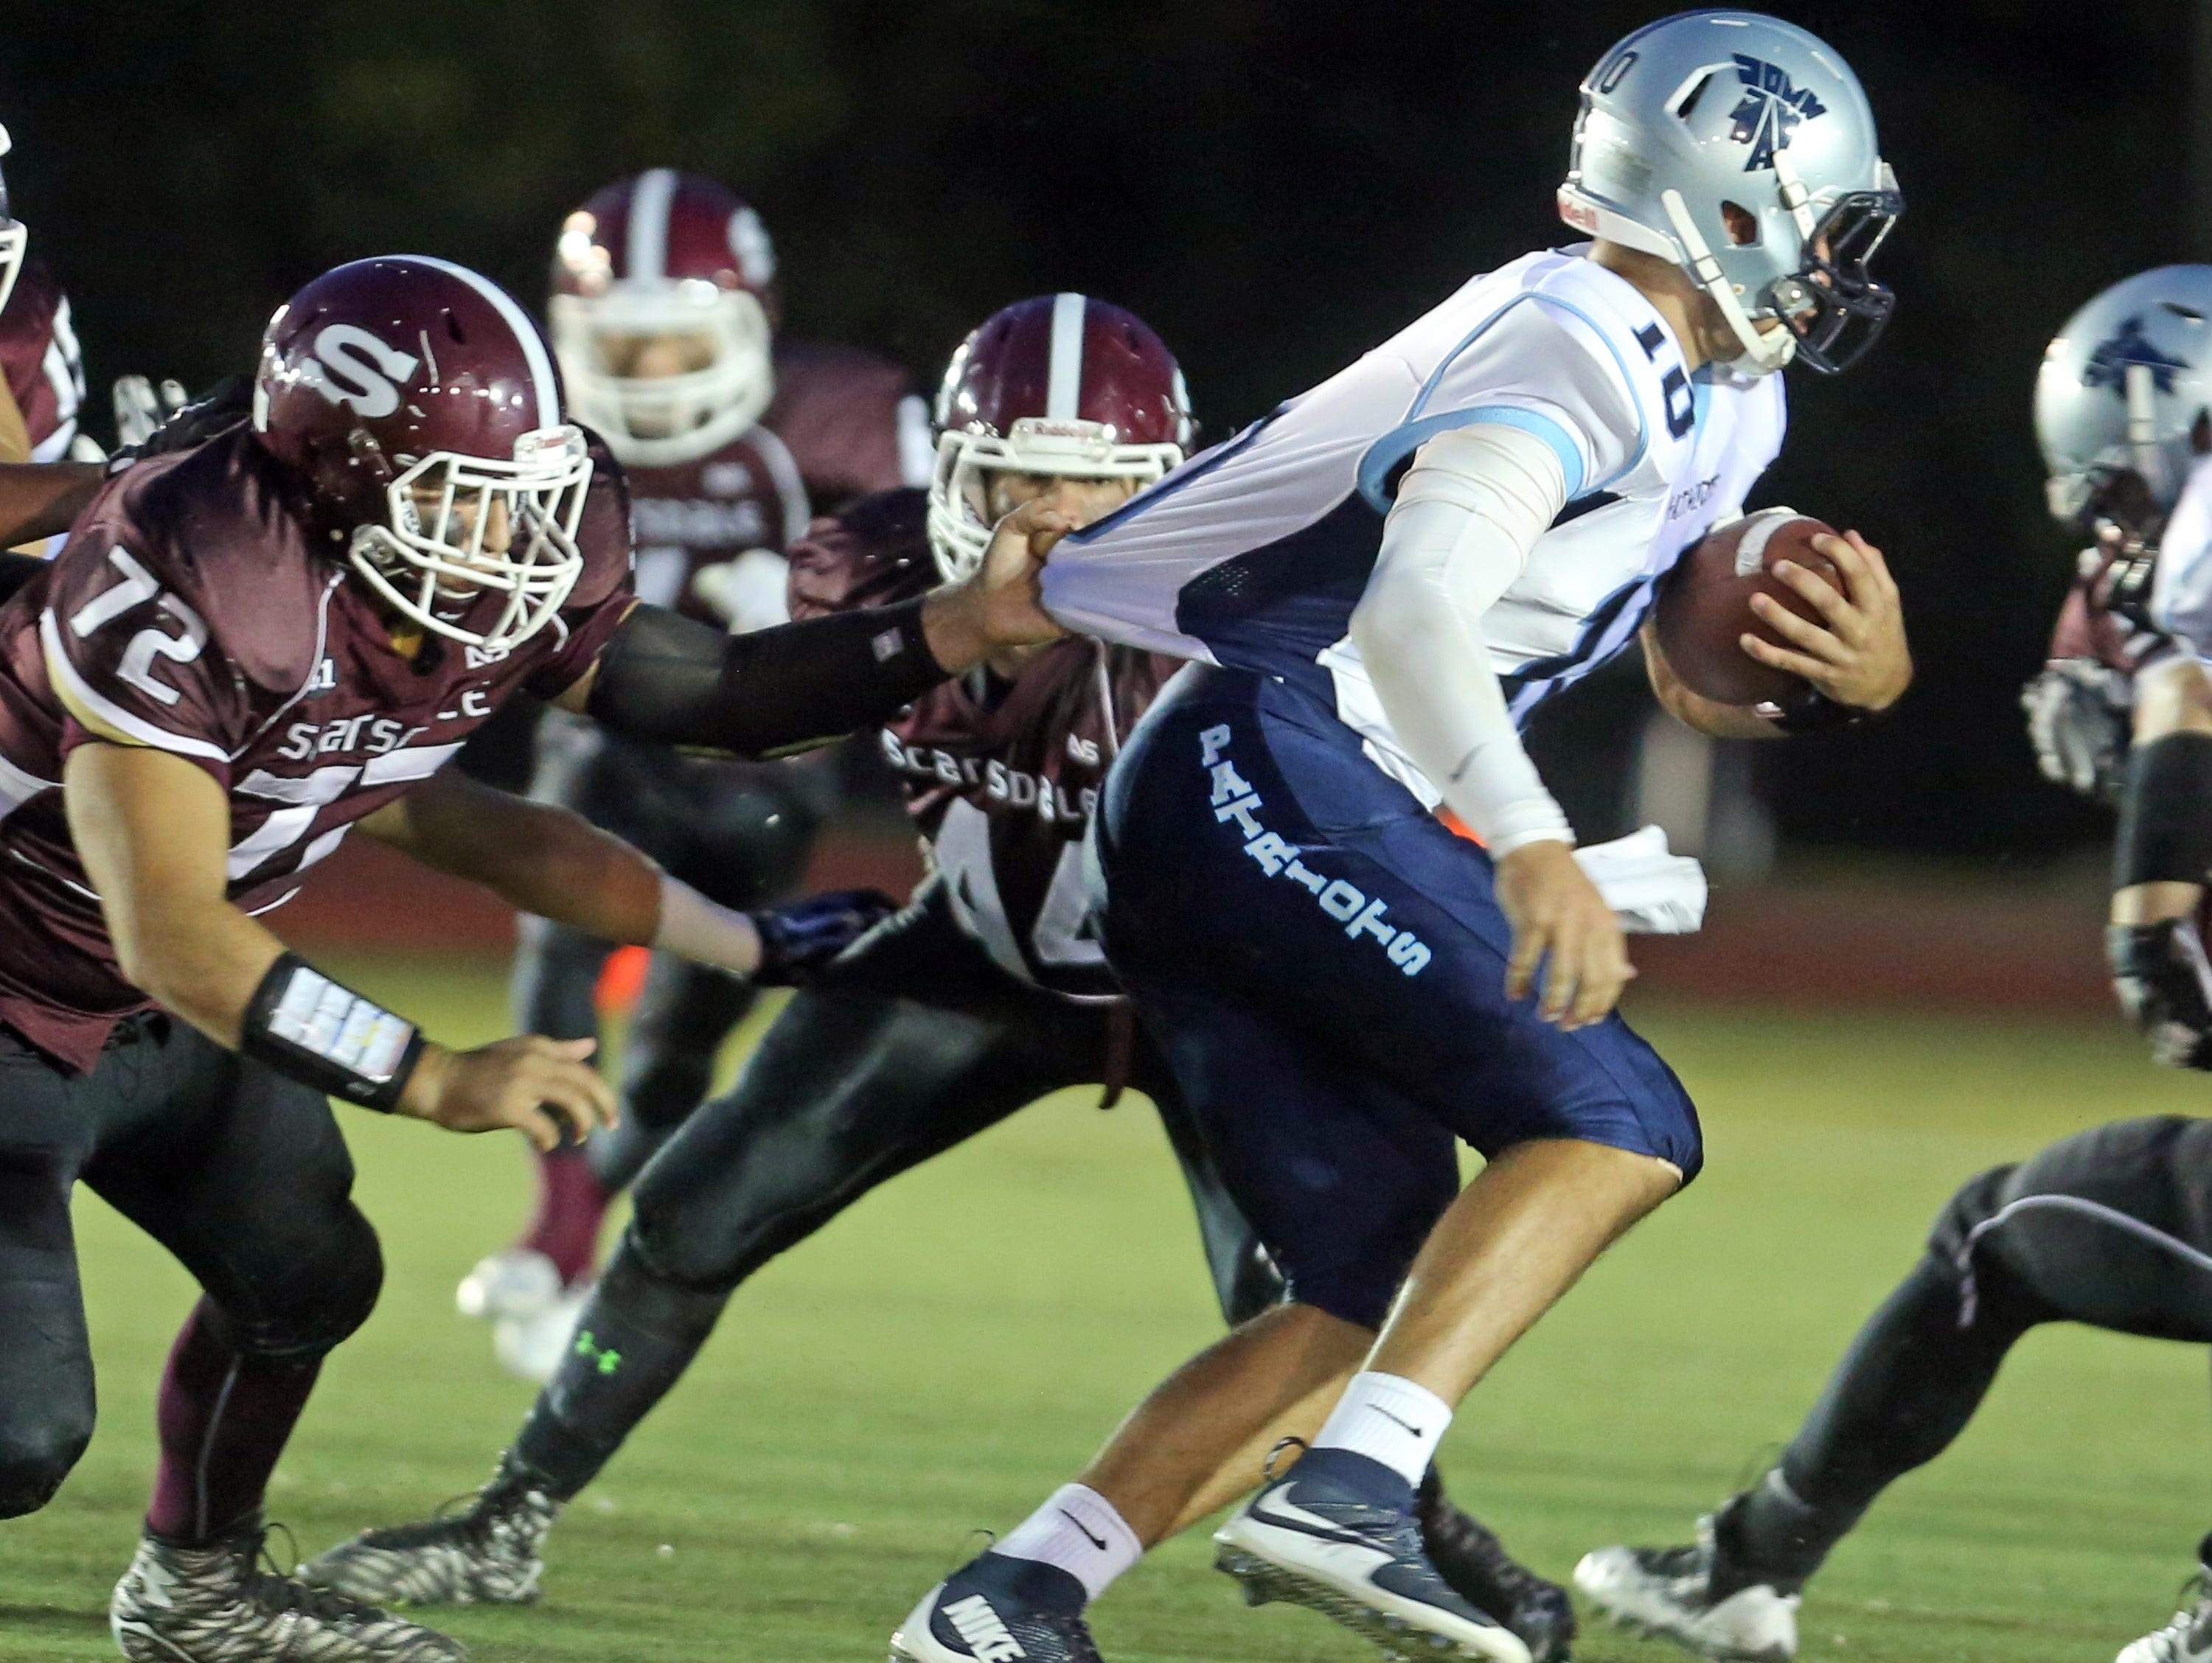 ]ohn Jay East Fishkill quarterback Ryan Schumacher is pulled down from behind by Scarsdale's Ethan Raff during a varsity football game at Scarsdale High School Sept. 25, 2015.